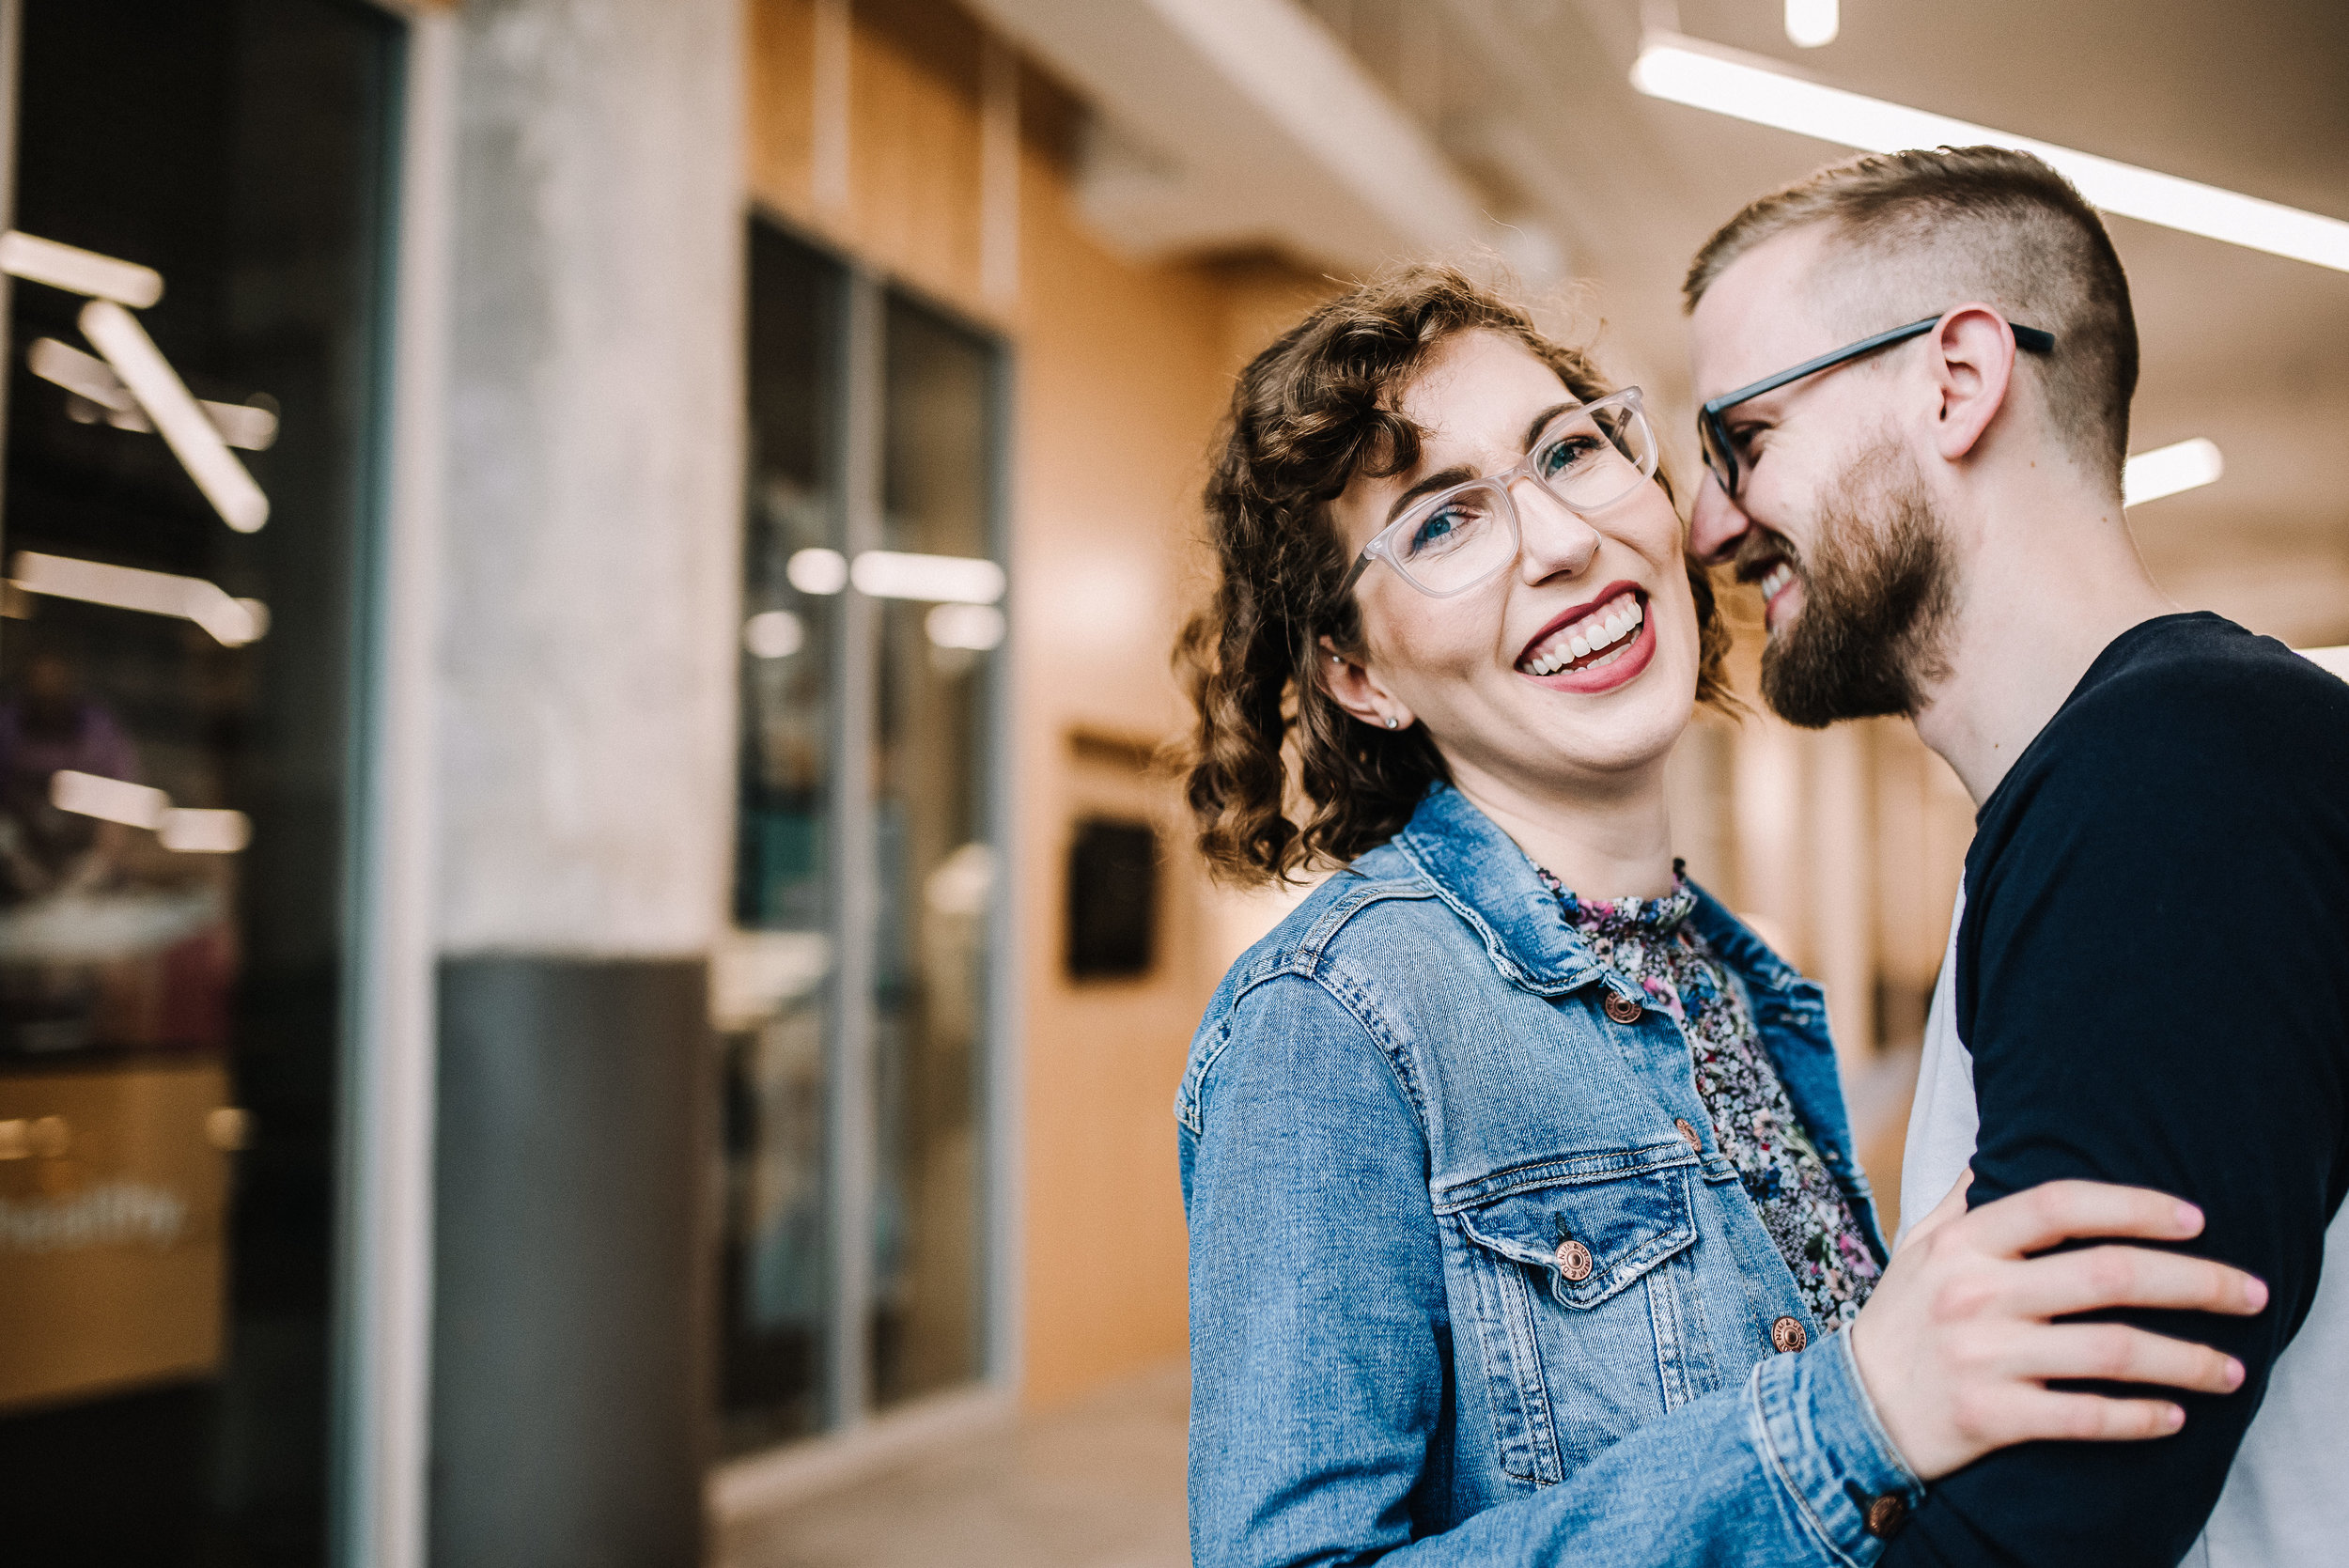 Crosstown-Concourse-Engagement-Session_Angela&Eric-47.jpg